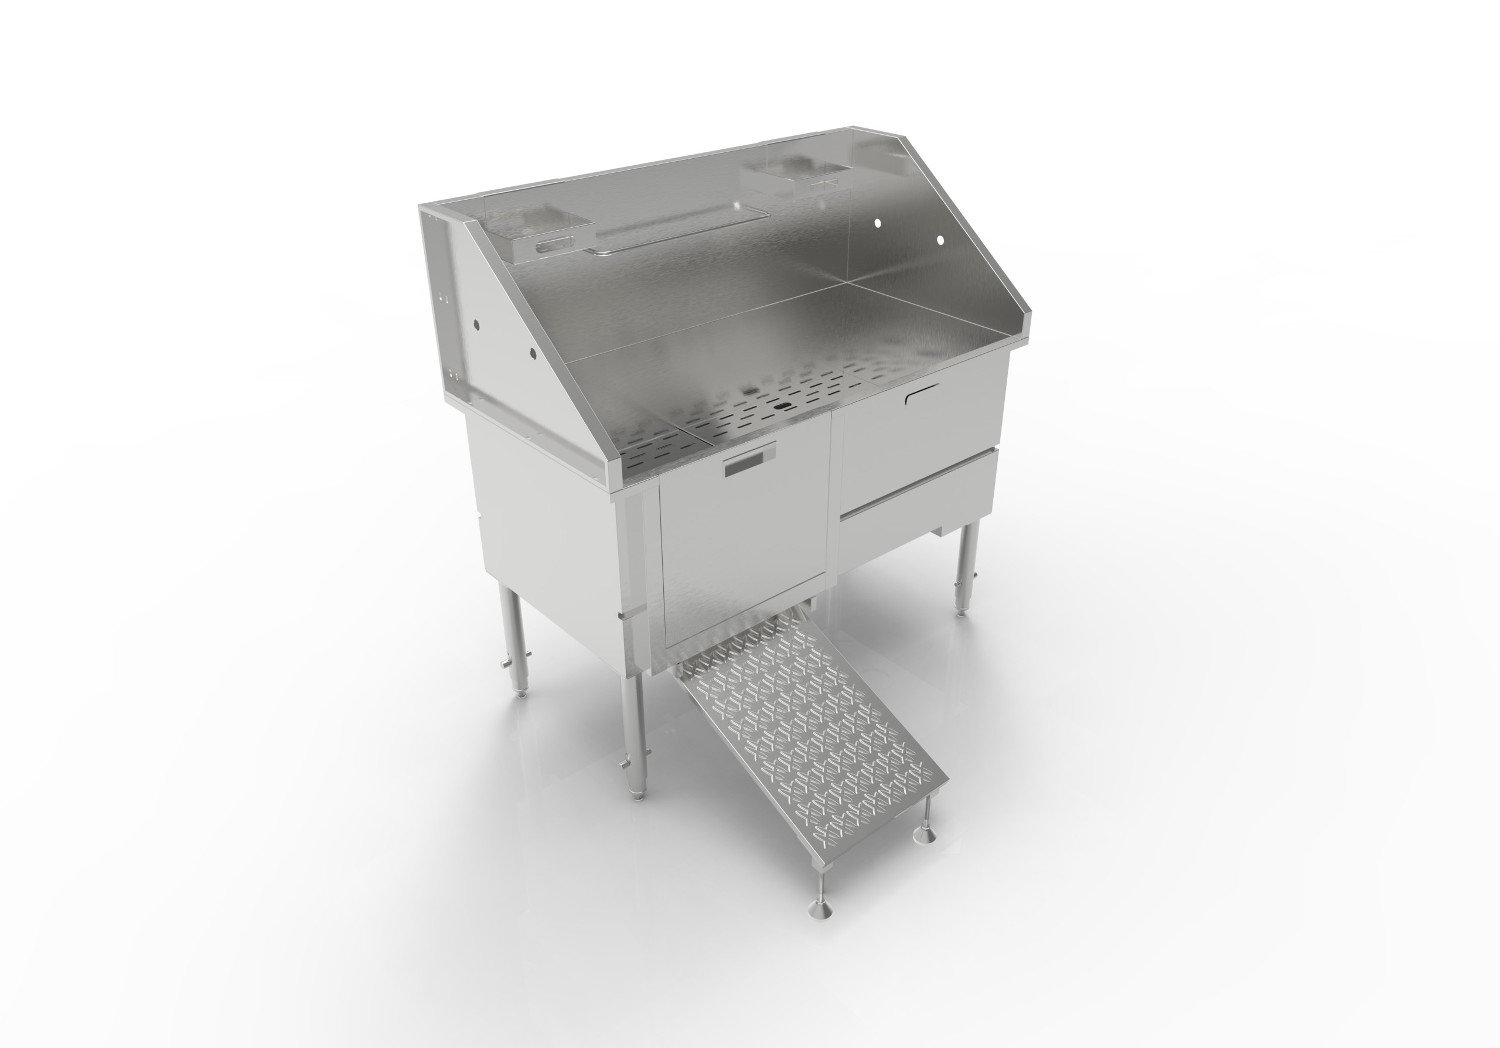 ADA Compliant, Handcrafted Stand-Alone Stainless Steel Dog Bath Stations